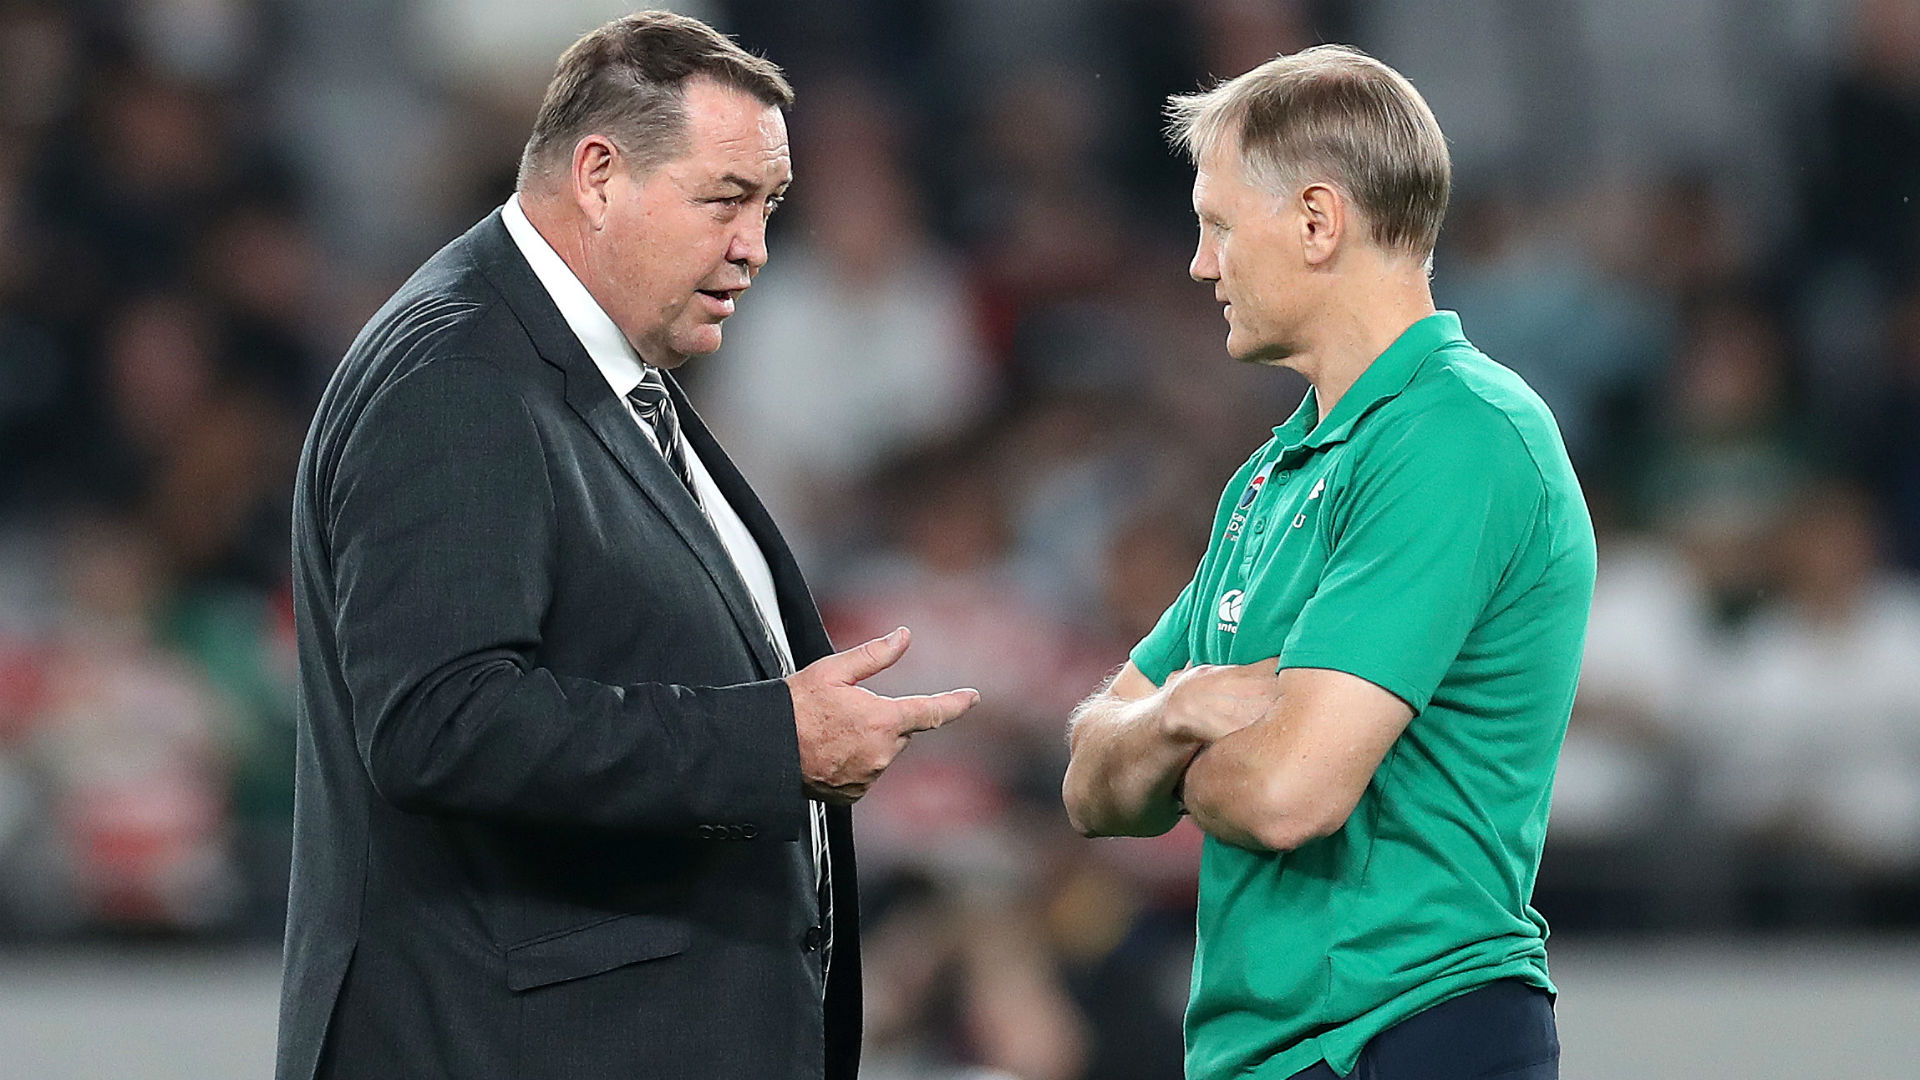 Rugby World Cup 2019: Hansen praises Schmidt and Best after 'magnificent careers' with Ireland